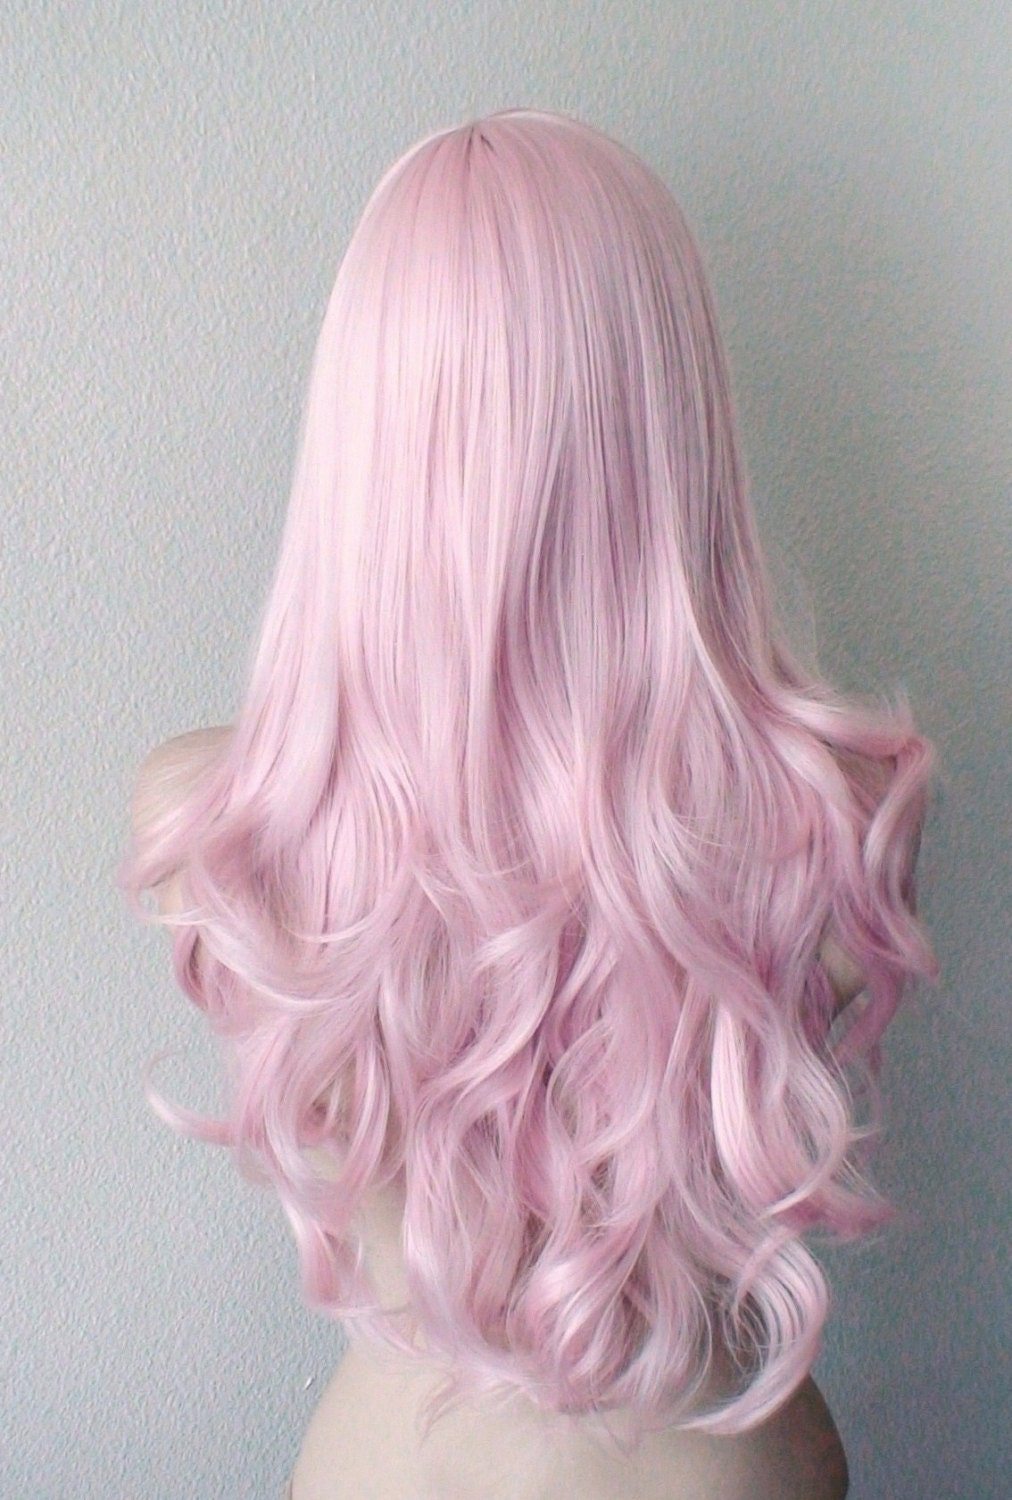 Pink Hair Wig Pastel Light Pink Long Wavy Curly Hairstyle